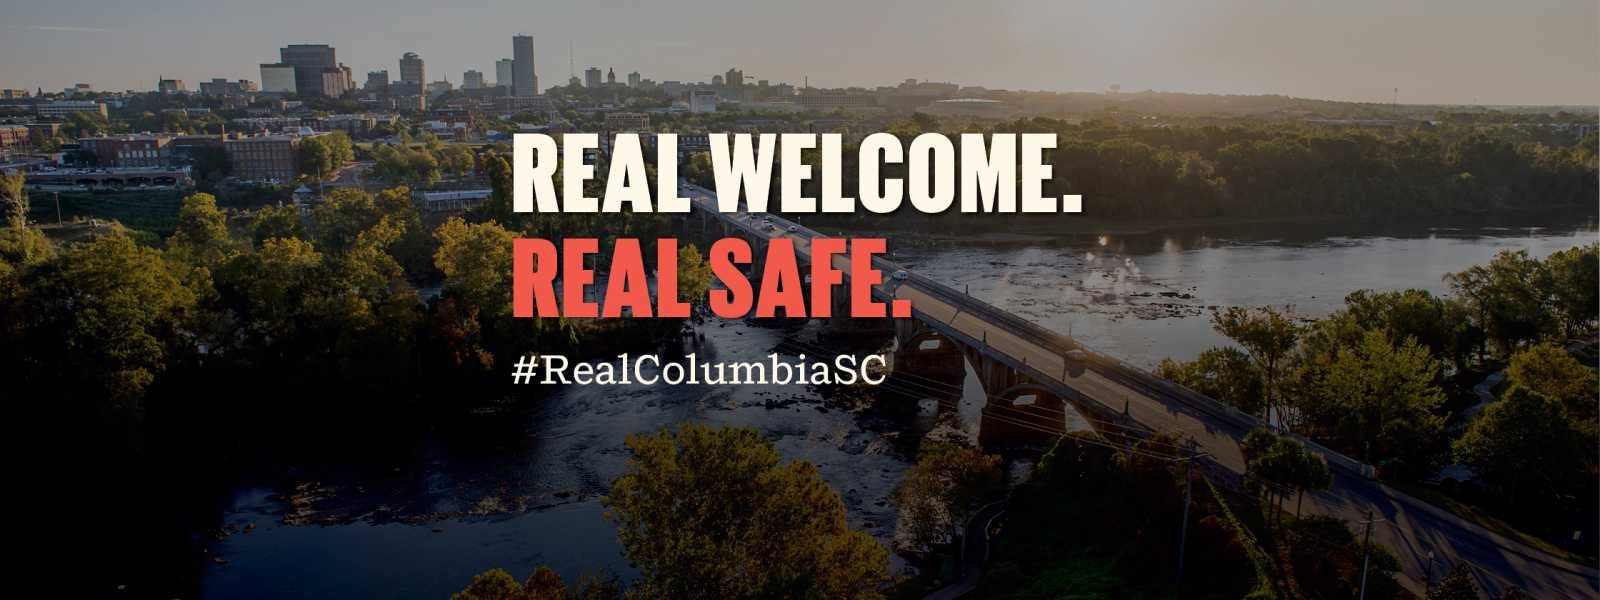 Real Welcome. Real Safe.